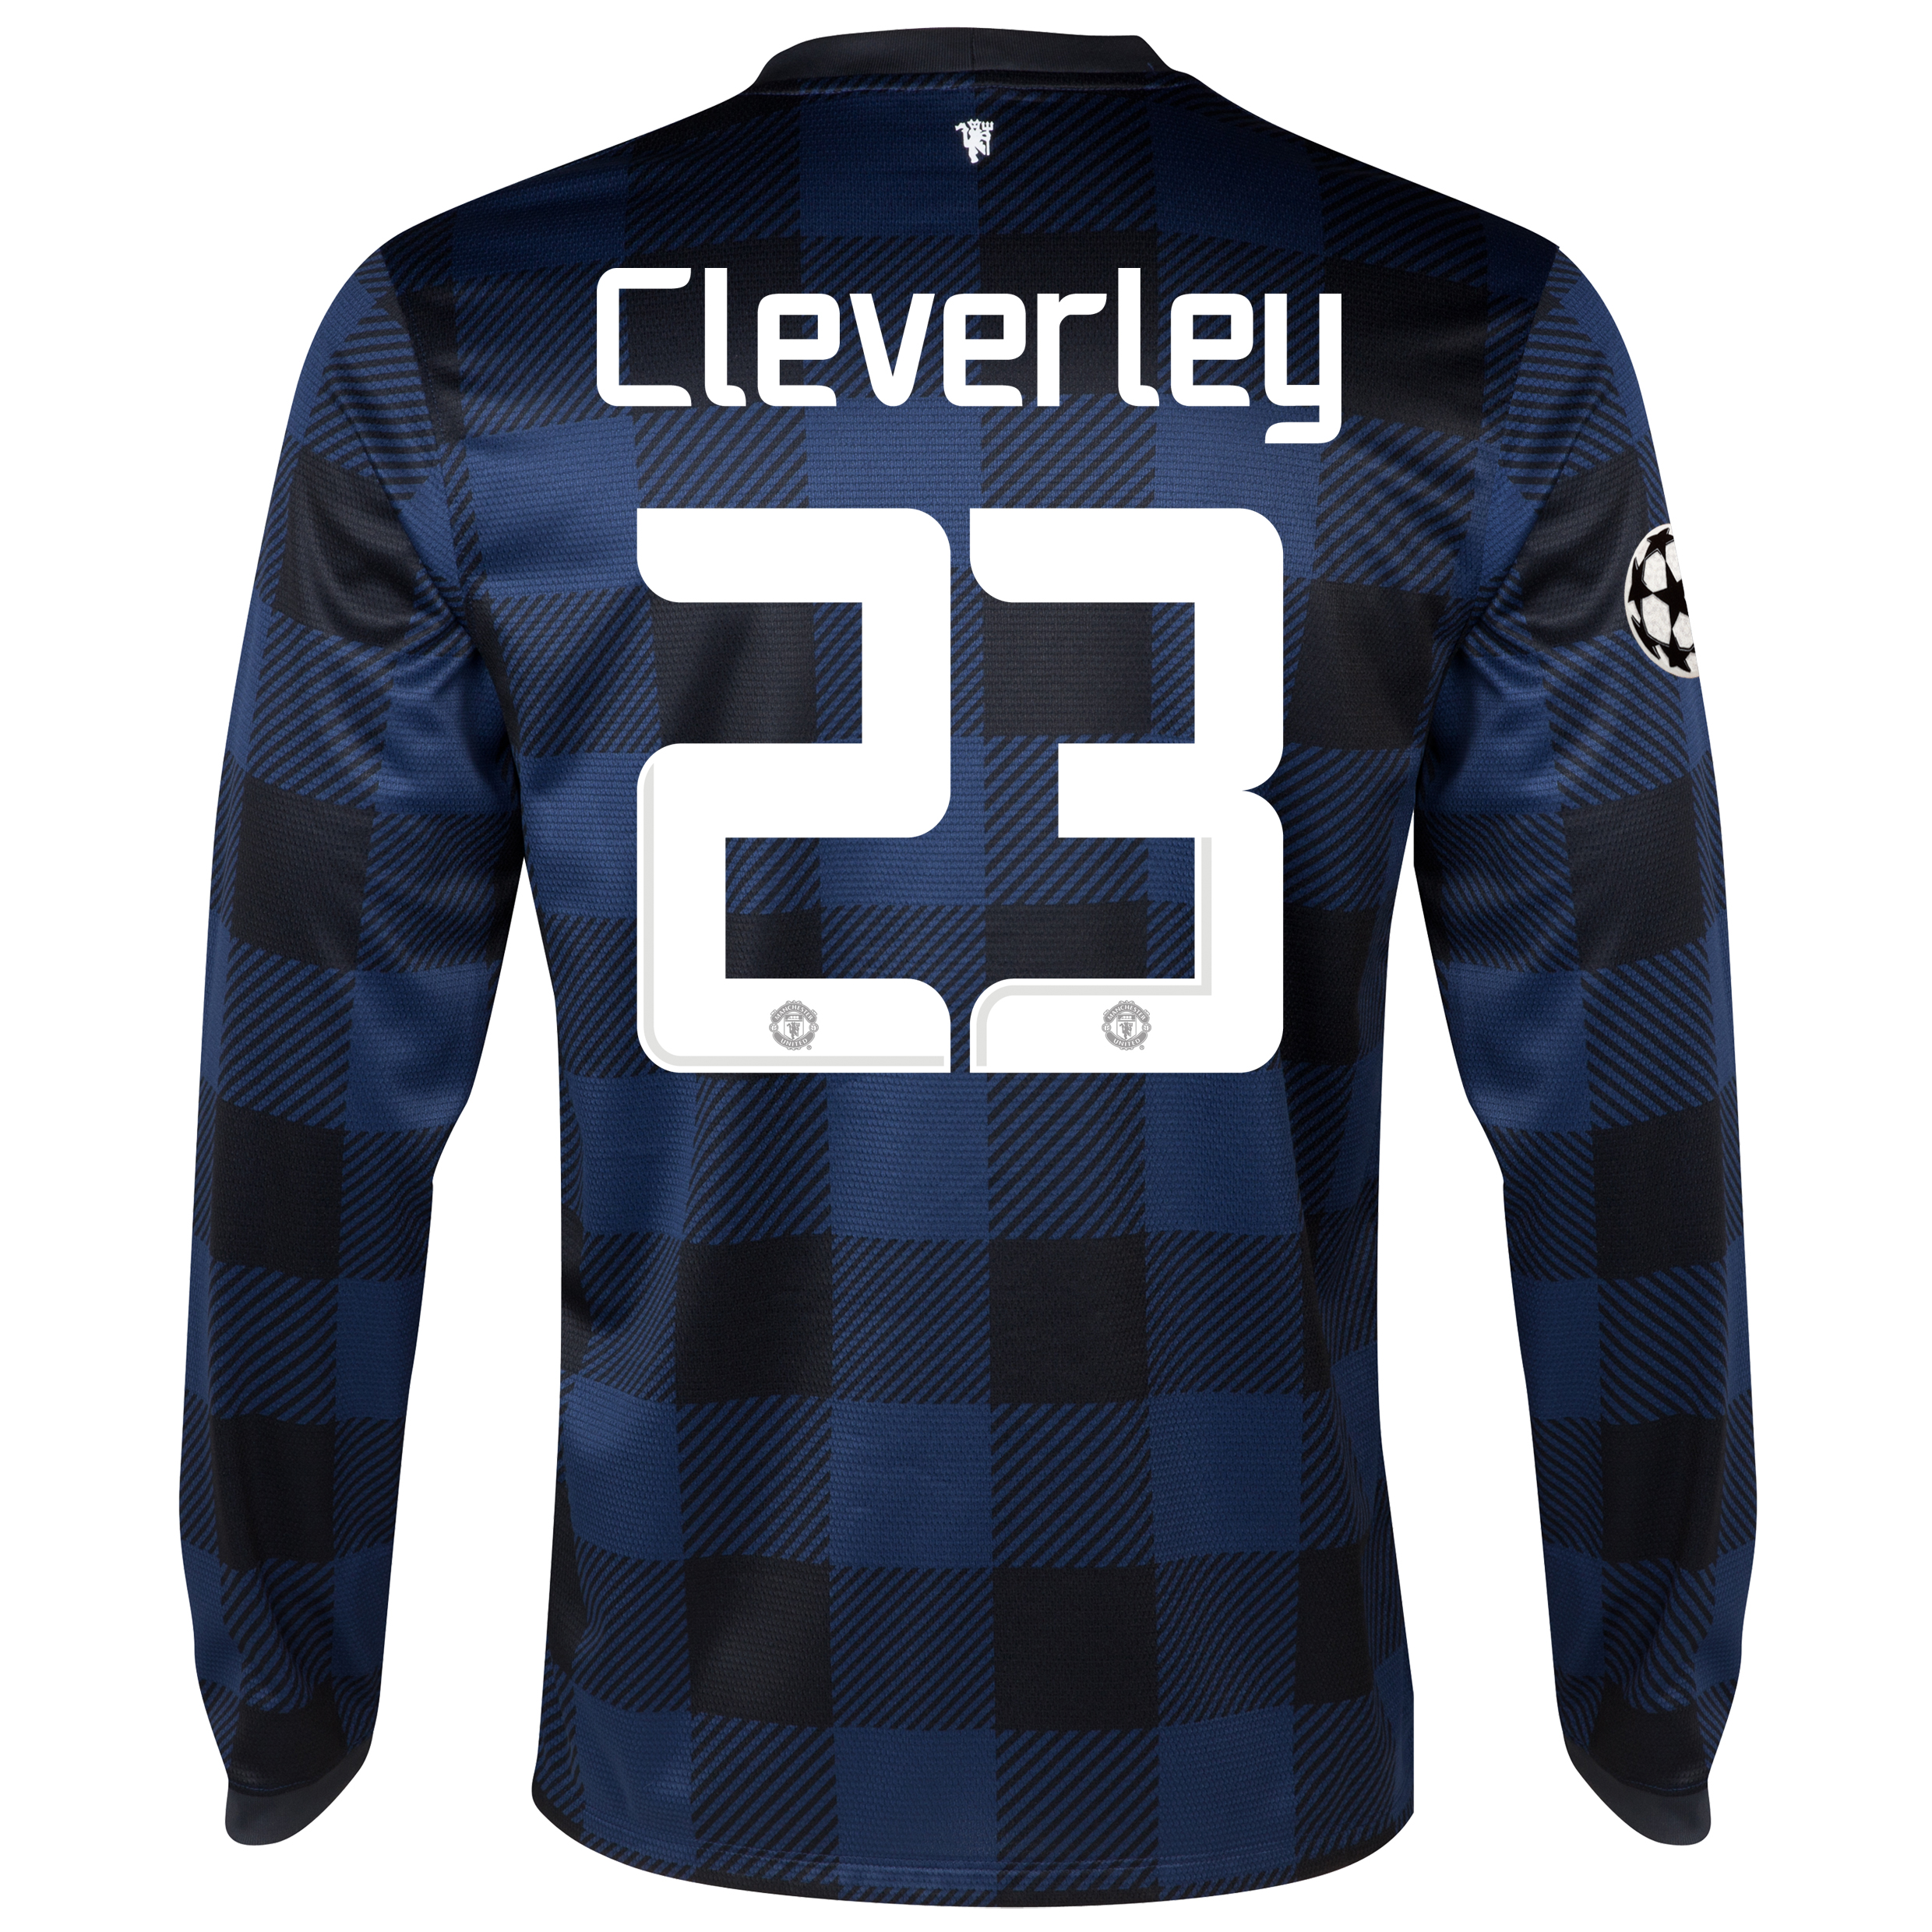 Manchester United UEFA Champions League Away Shirt 2013/14 - Long Sleeved - Kids with Cleverley 23 printing